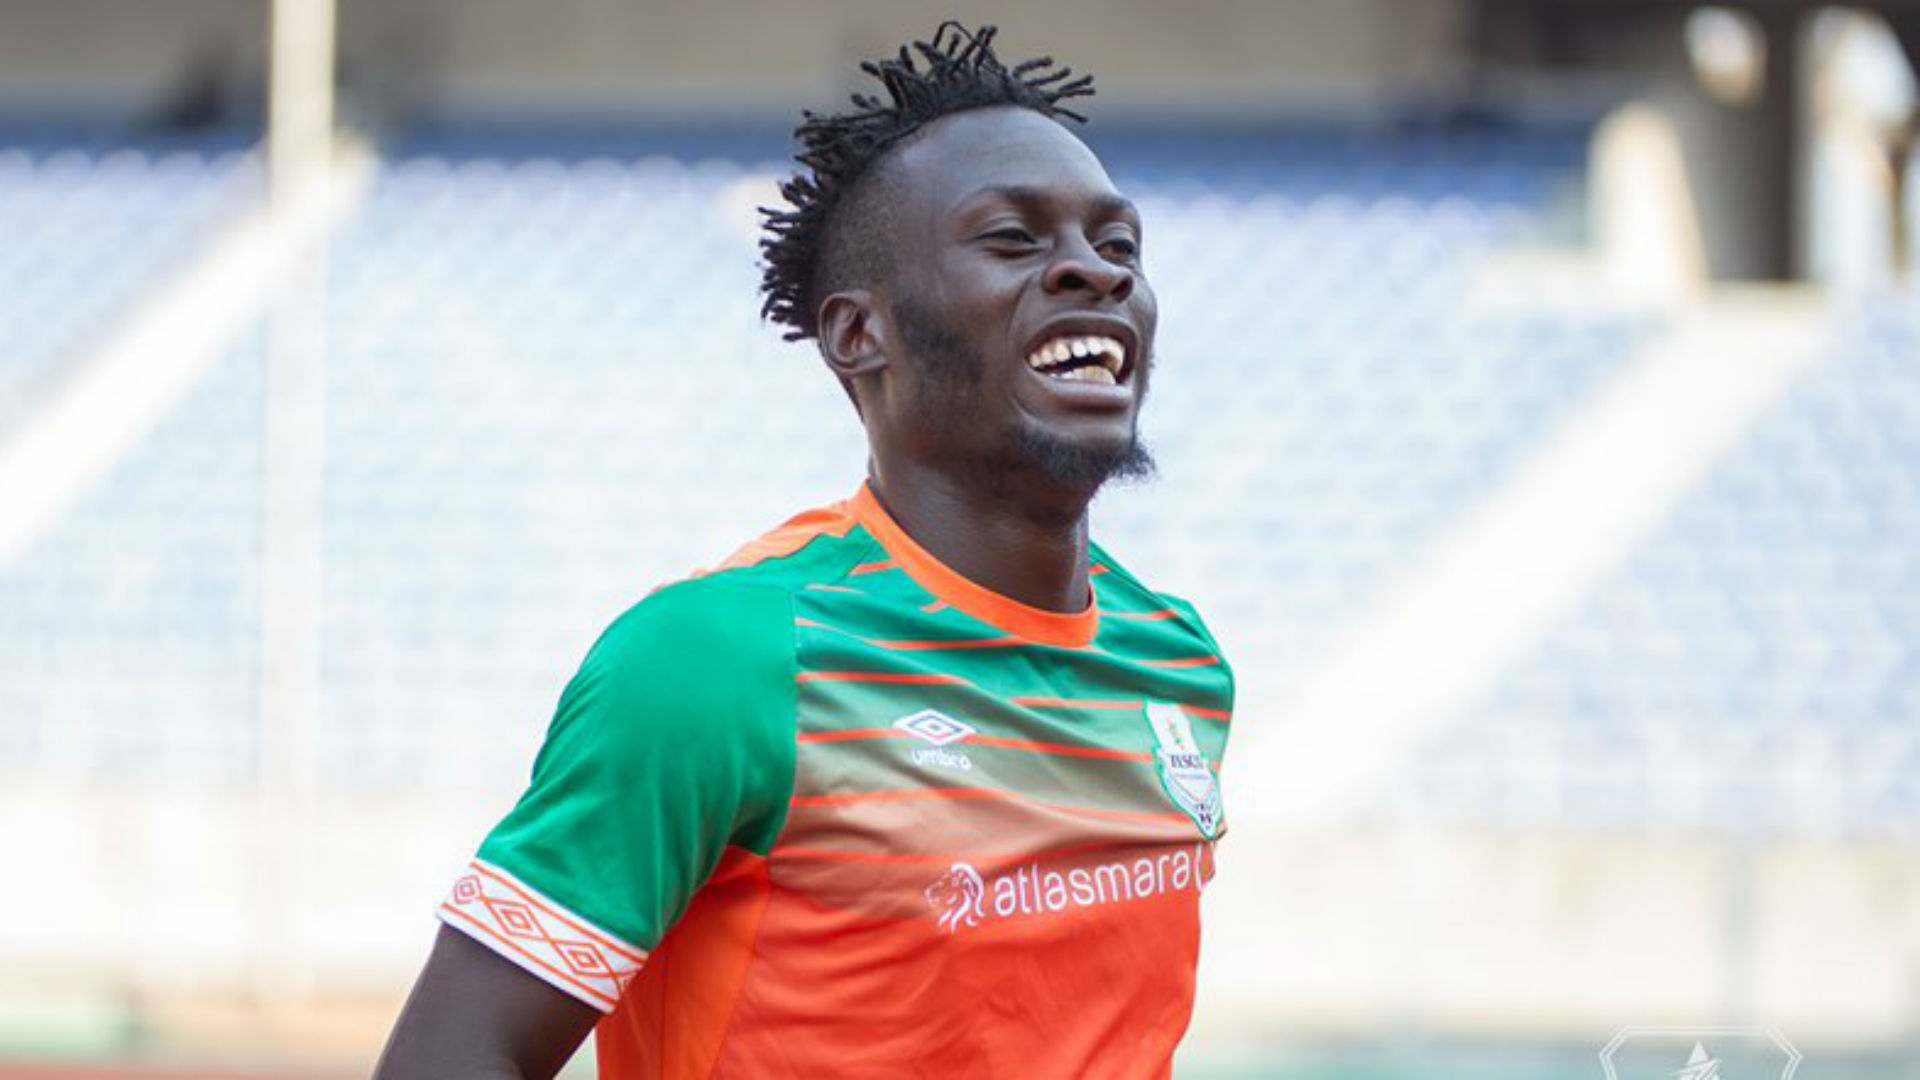 Were: Kenya and Zesco United striker attracts interest from Simba SC